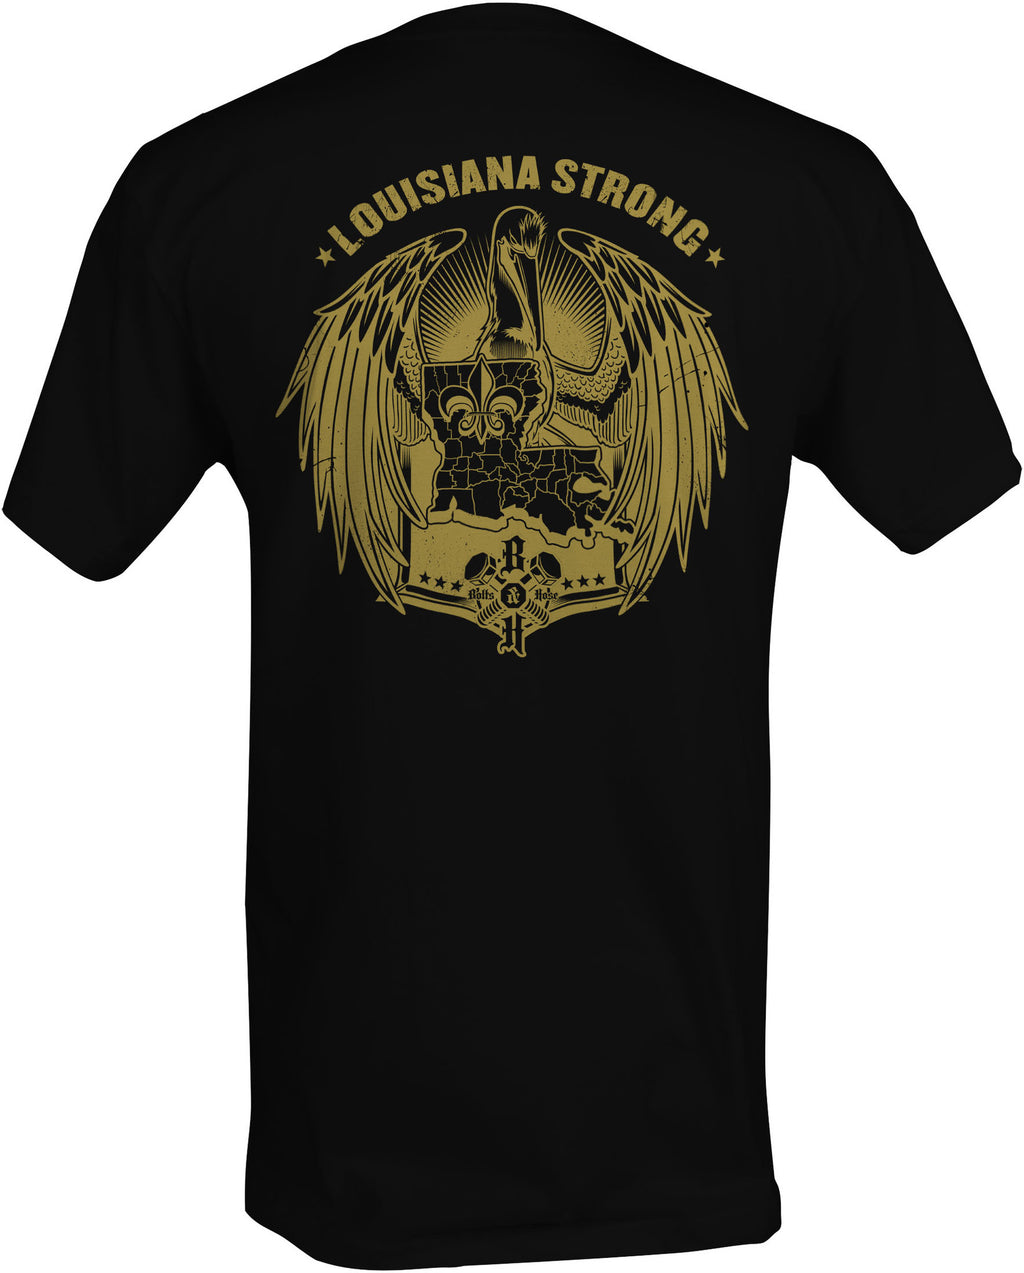 Louisiana Strong (Men's Regular Tee Gold)